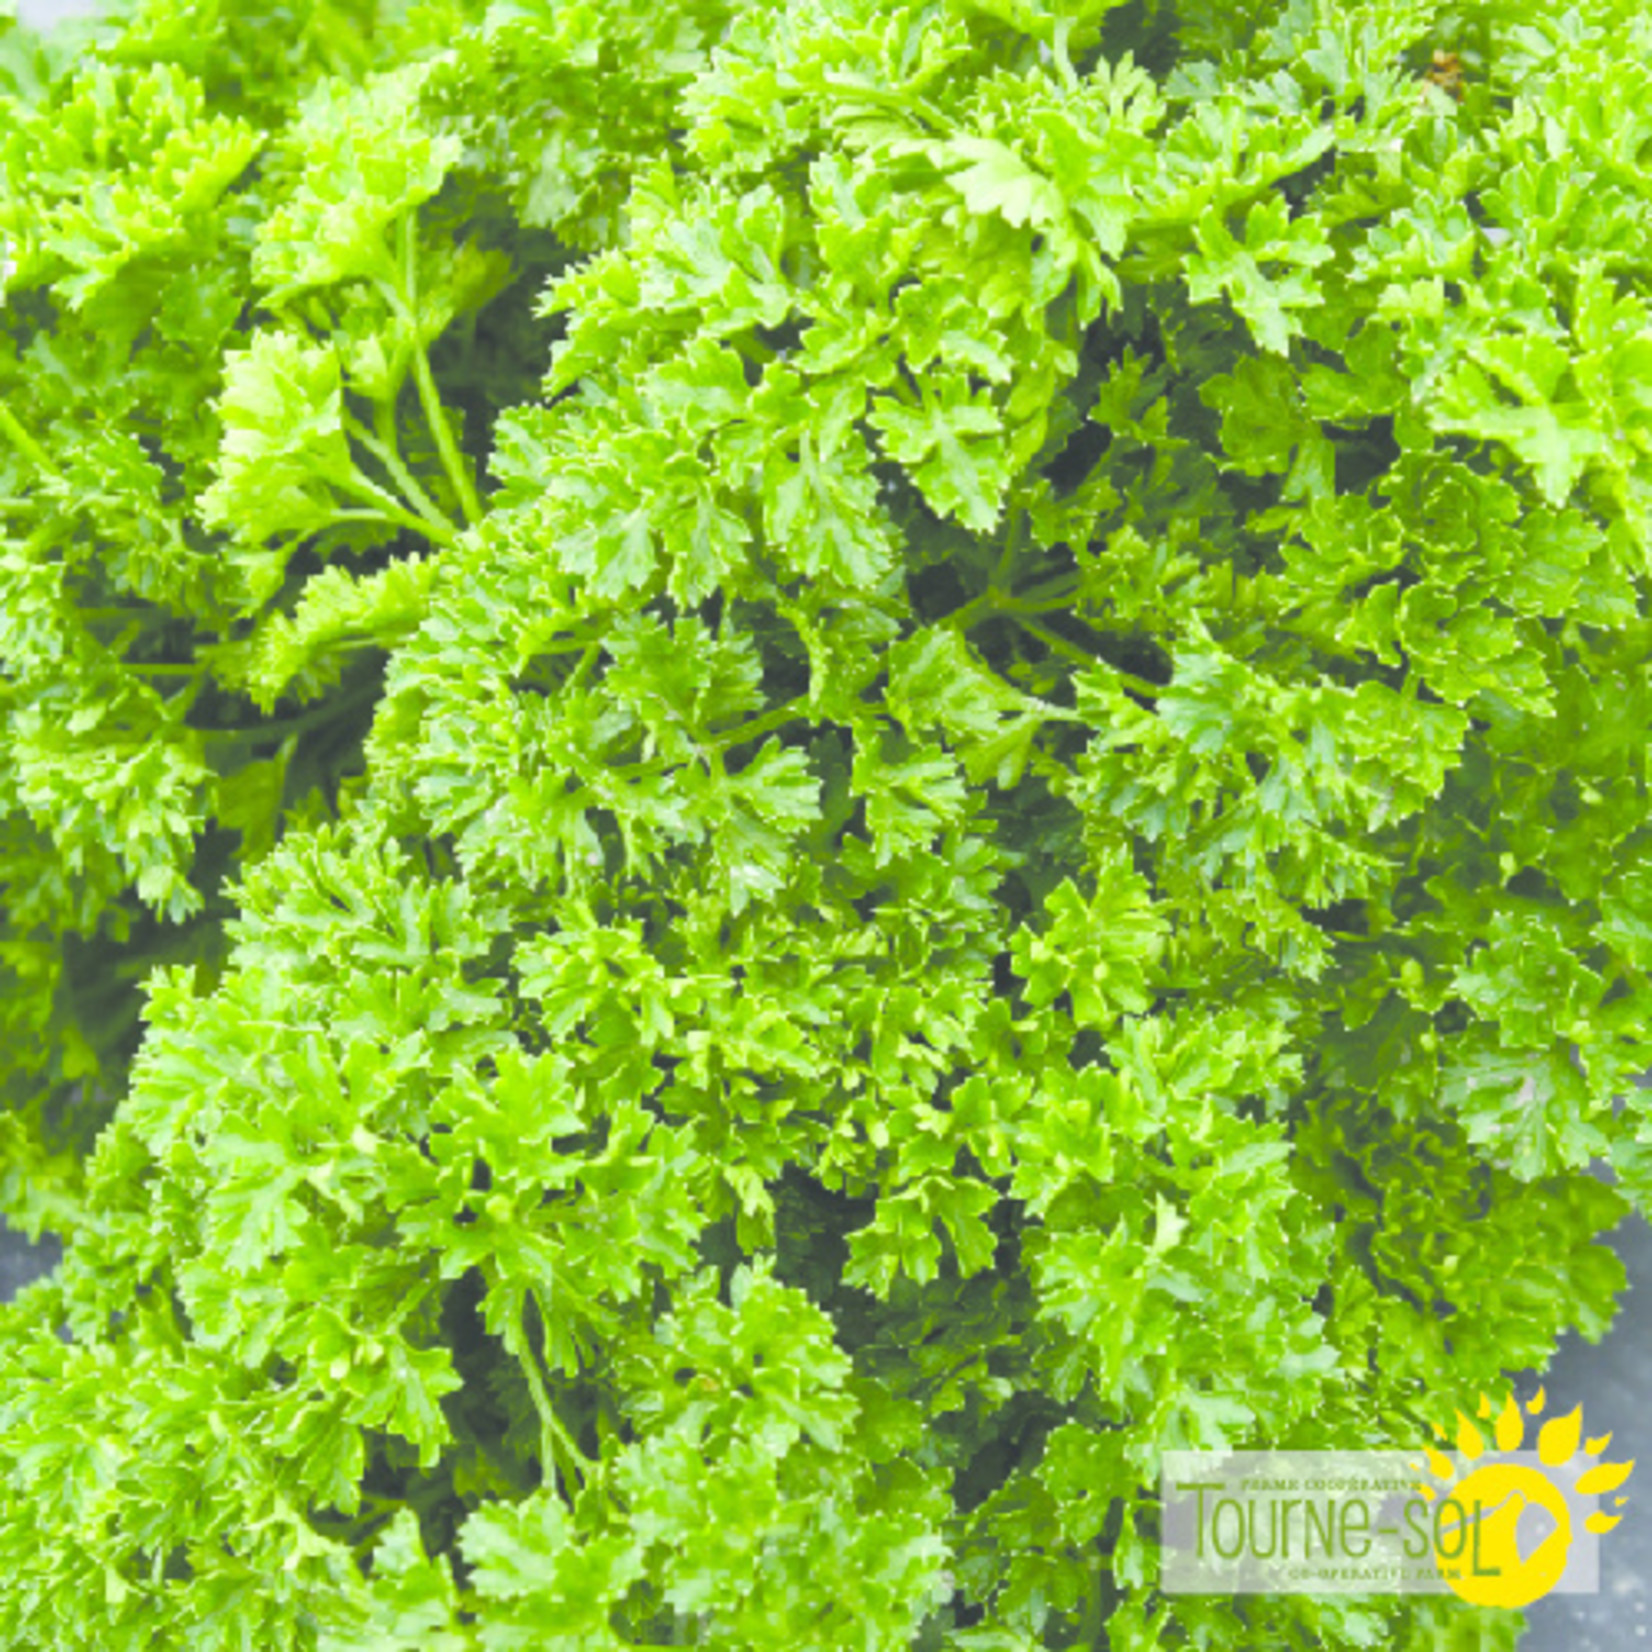 Tourne-Sol Curled parsley